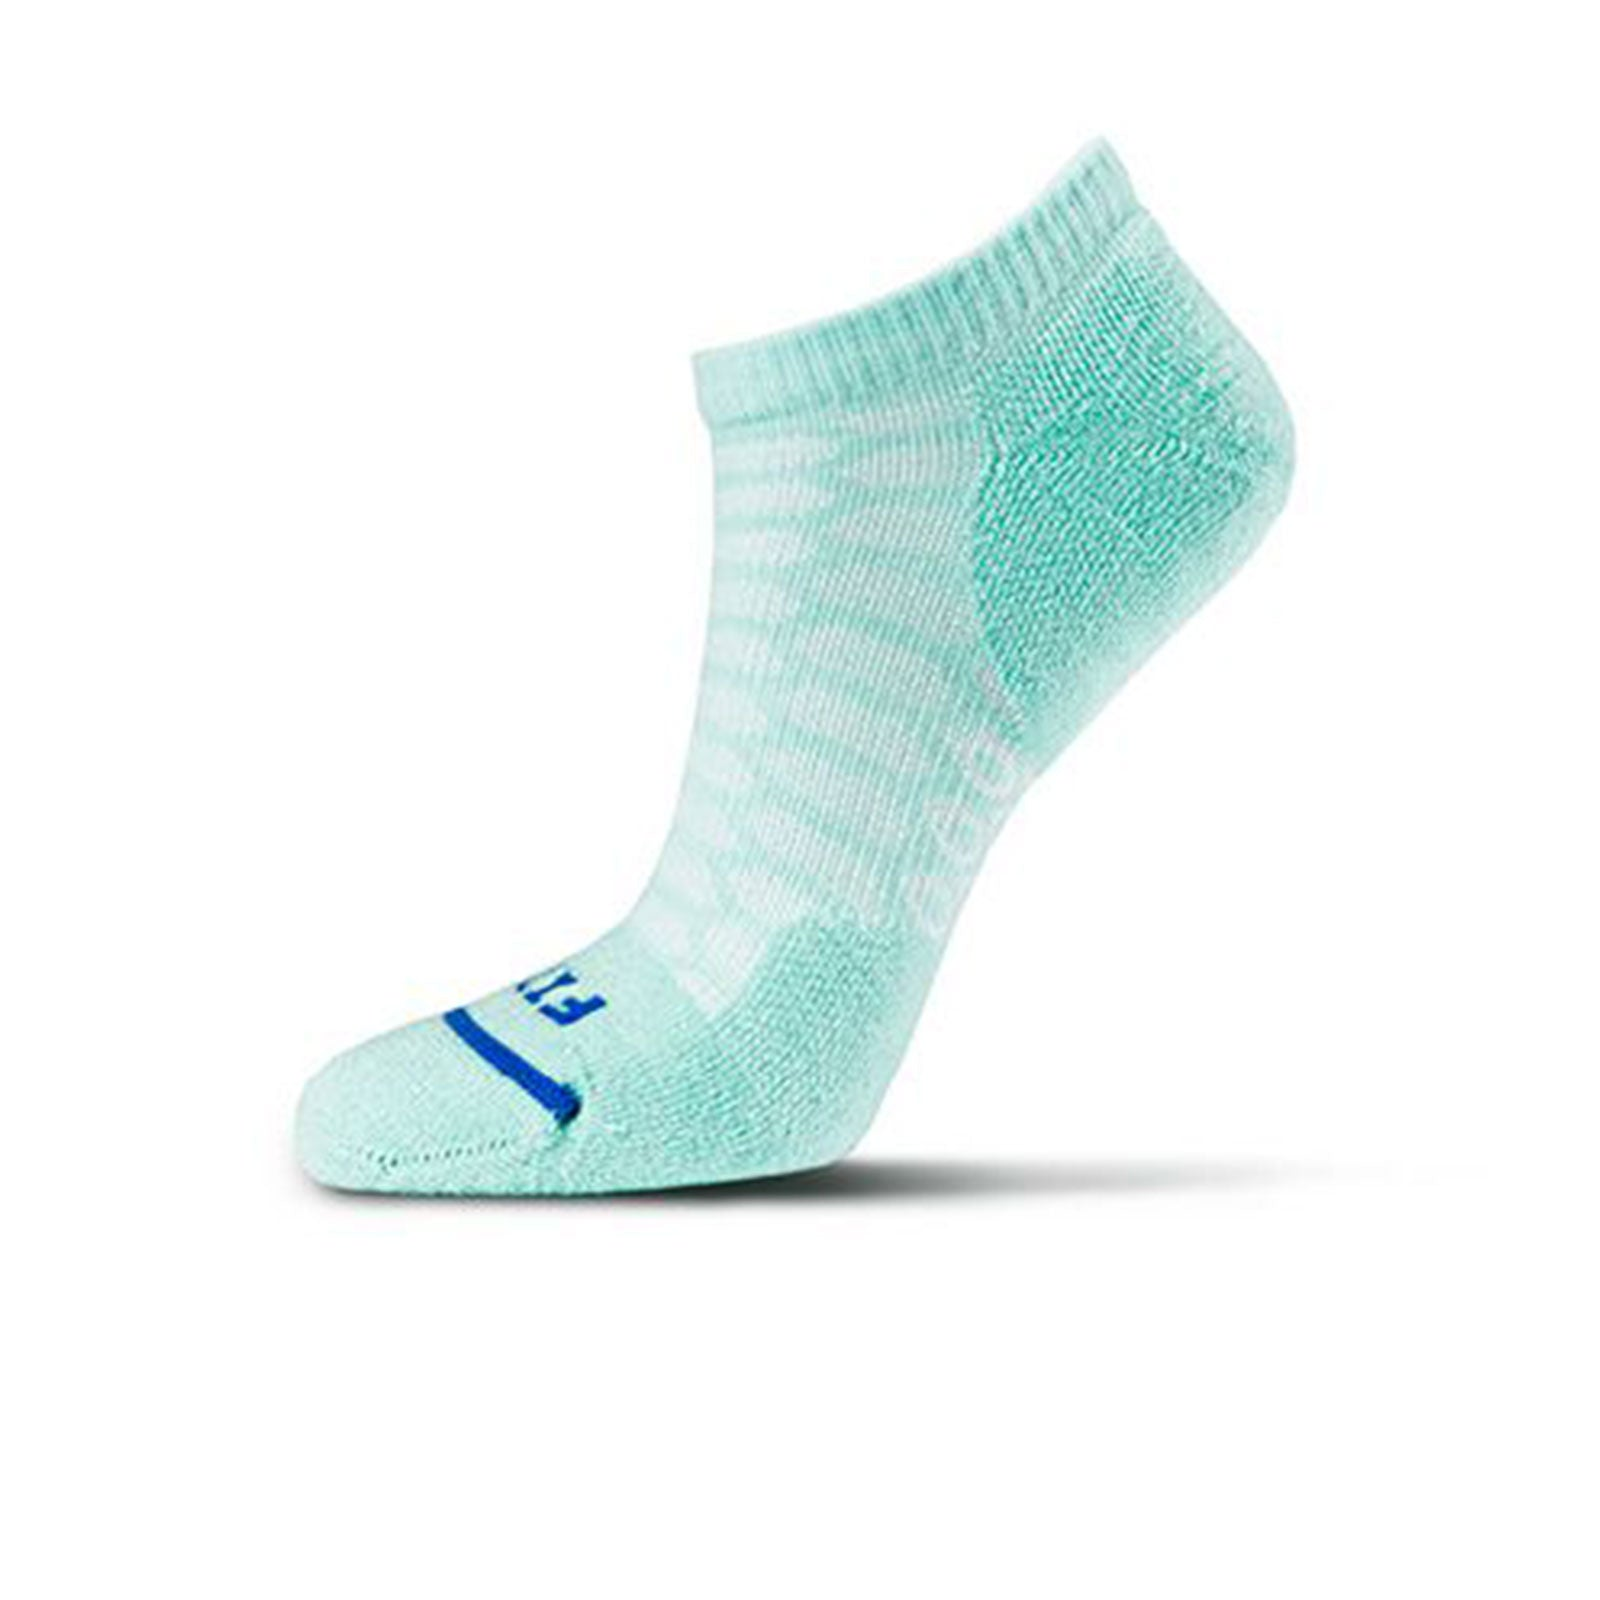 Fits Light Runner Low (Women) -  Lucite Green Socks - Life - No Show - The Heel Shoe Fitters